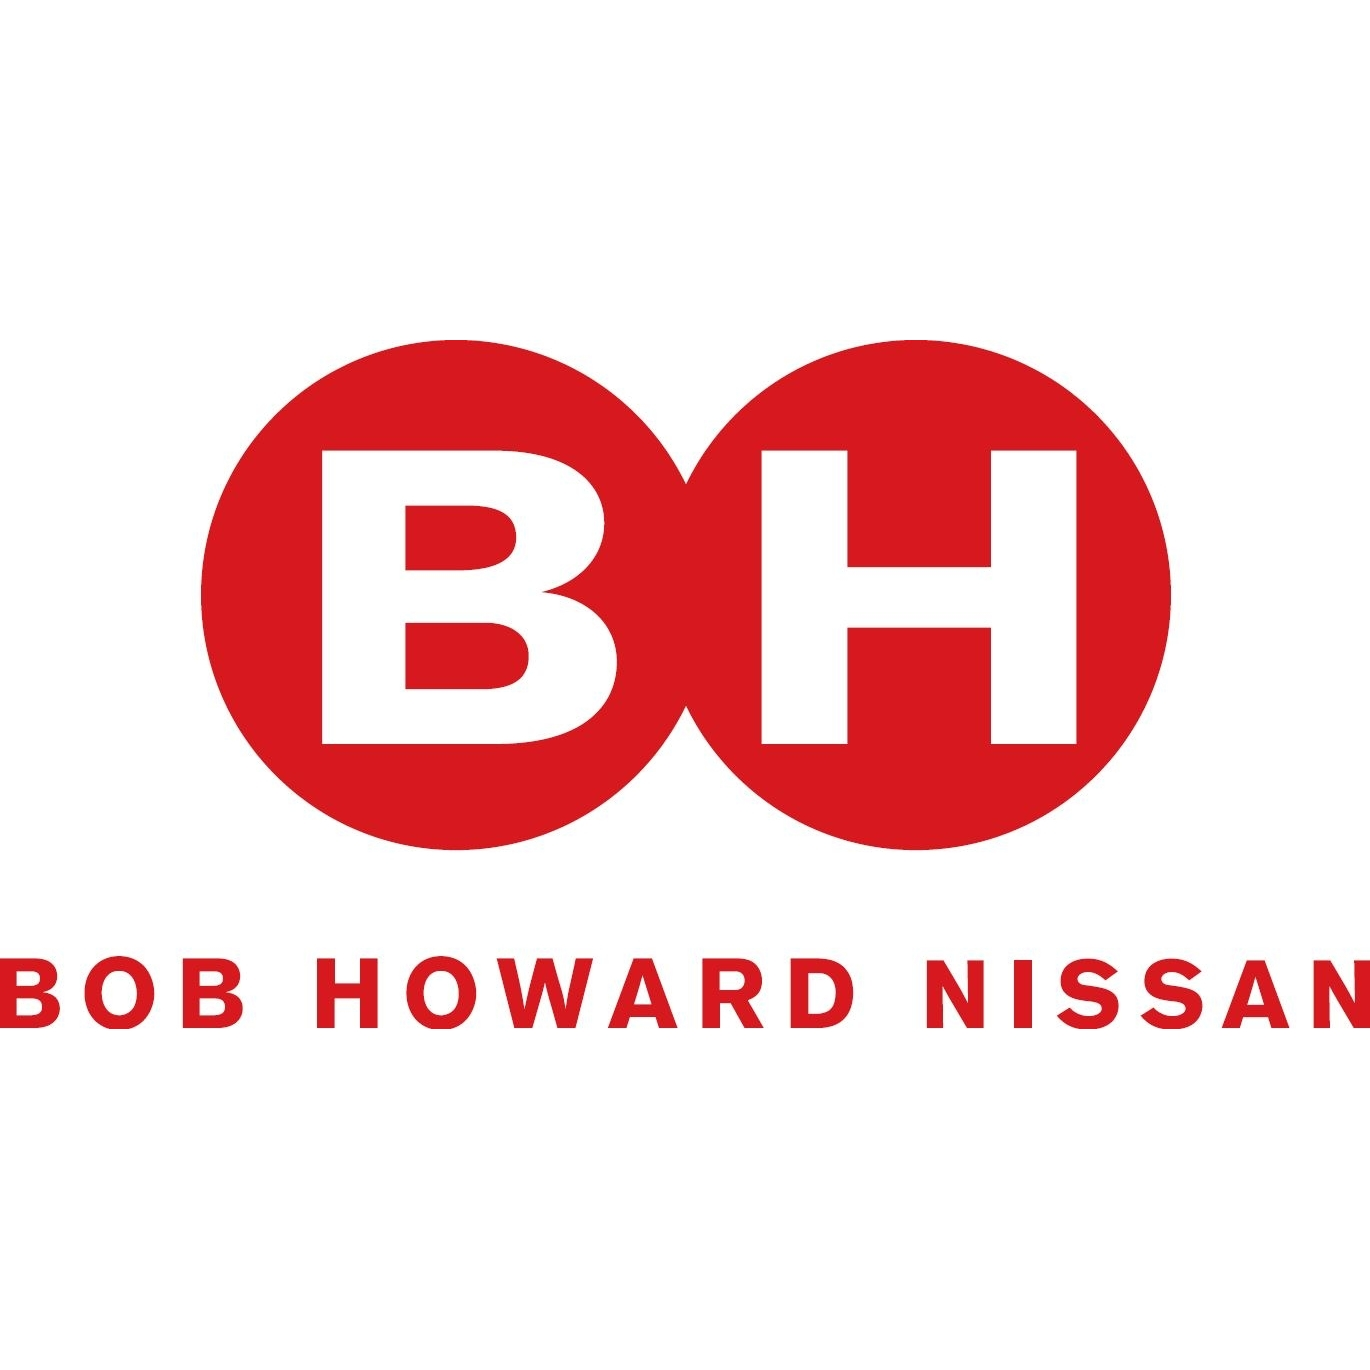 Bob Howard Nissan